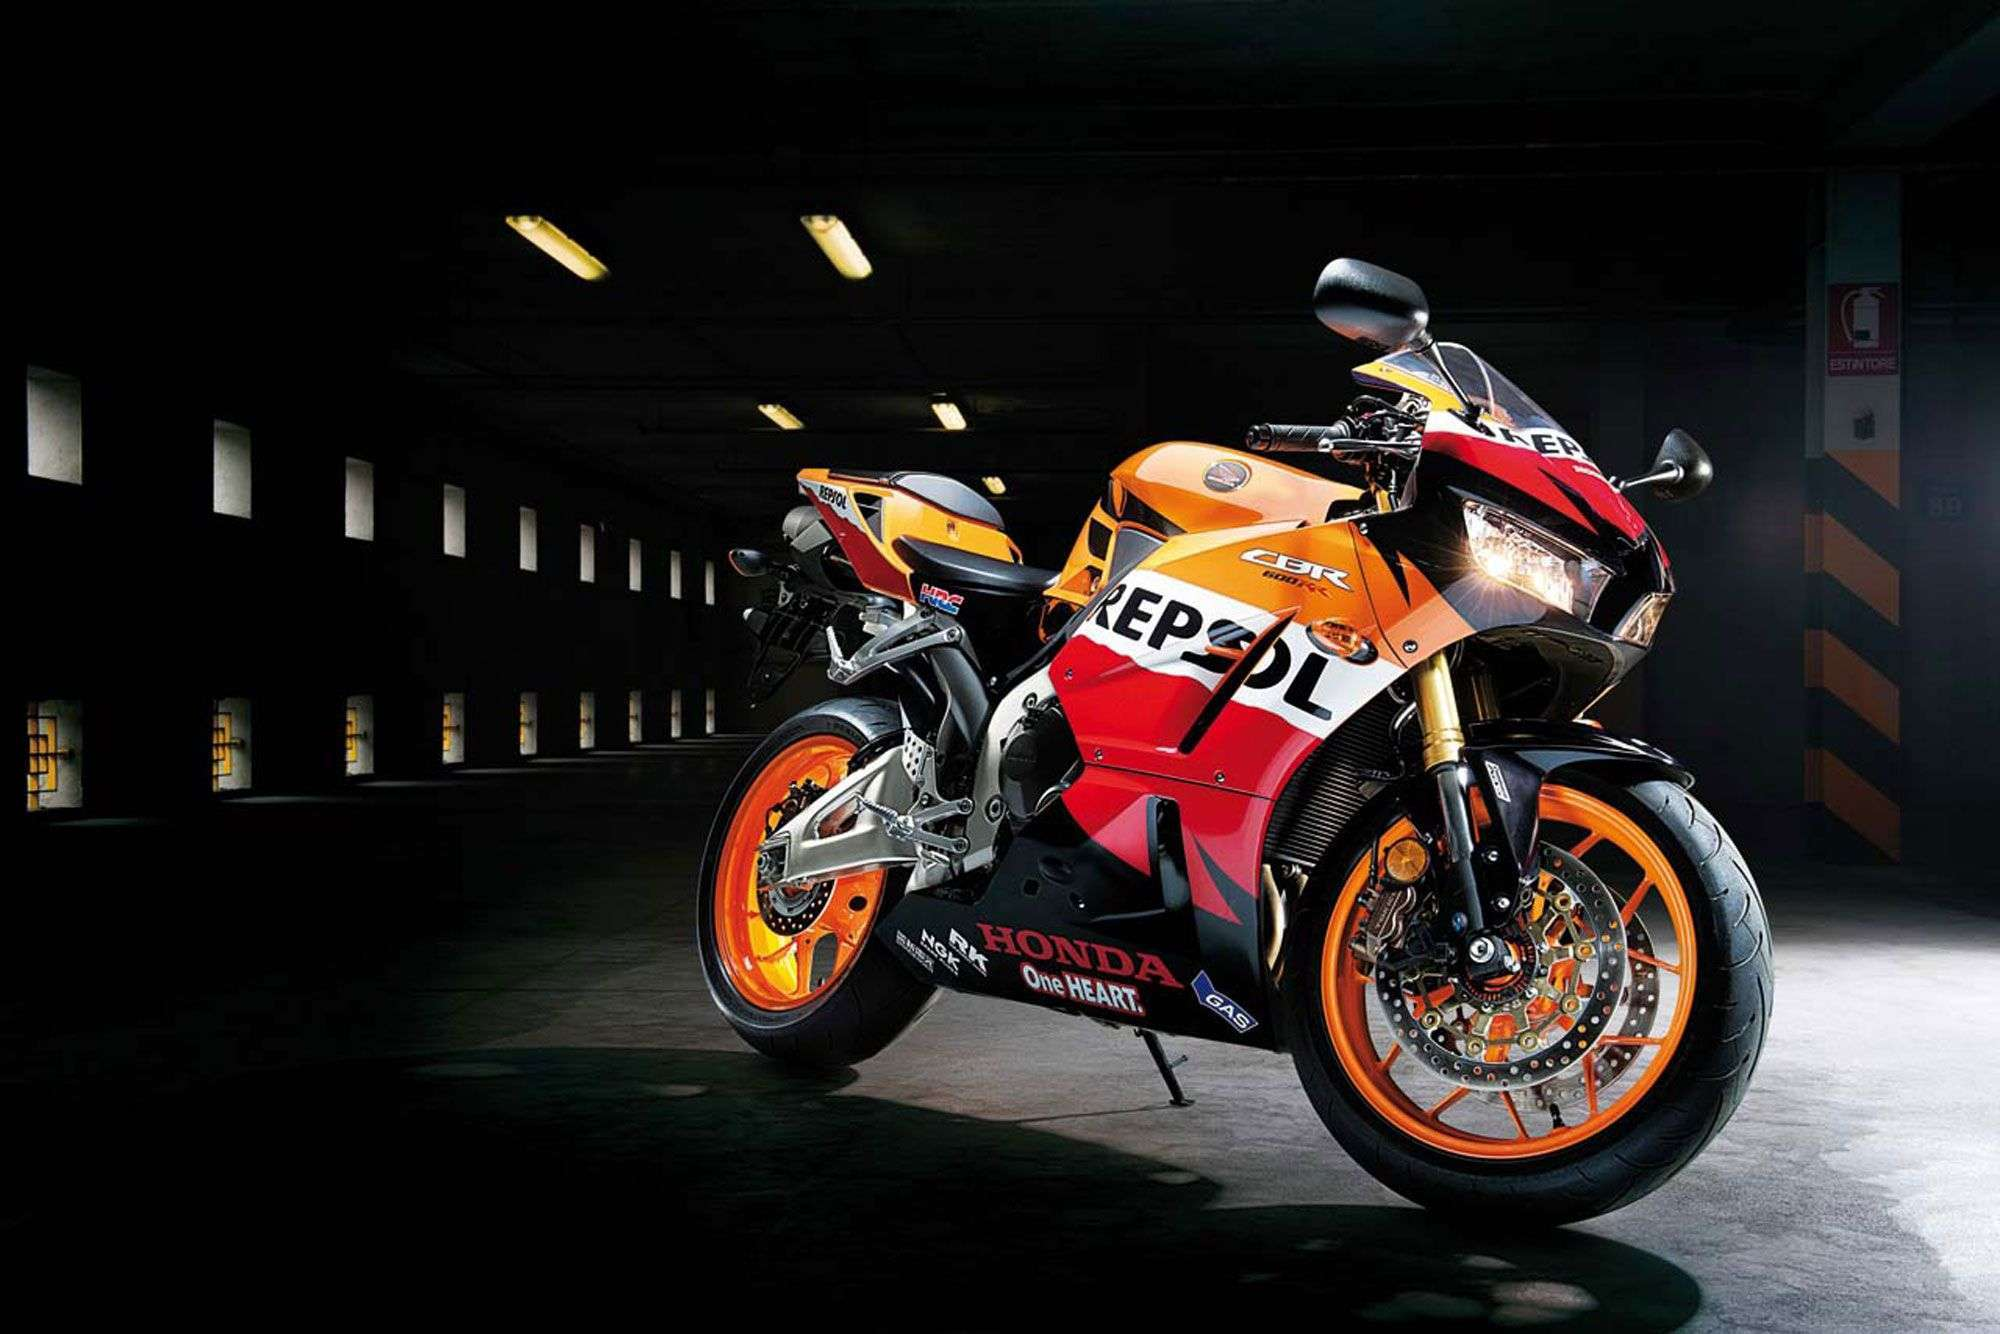 2013 Honda Cbr 600rr Repsol Wallpapers : Hd Car Wallpapers